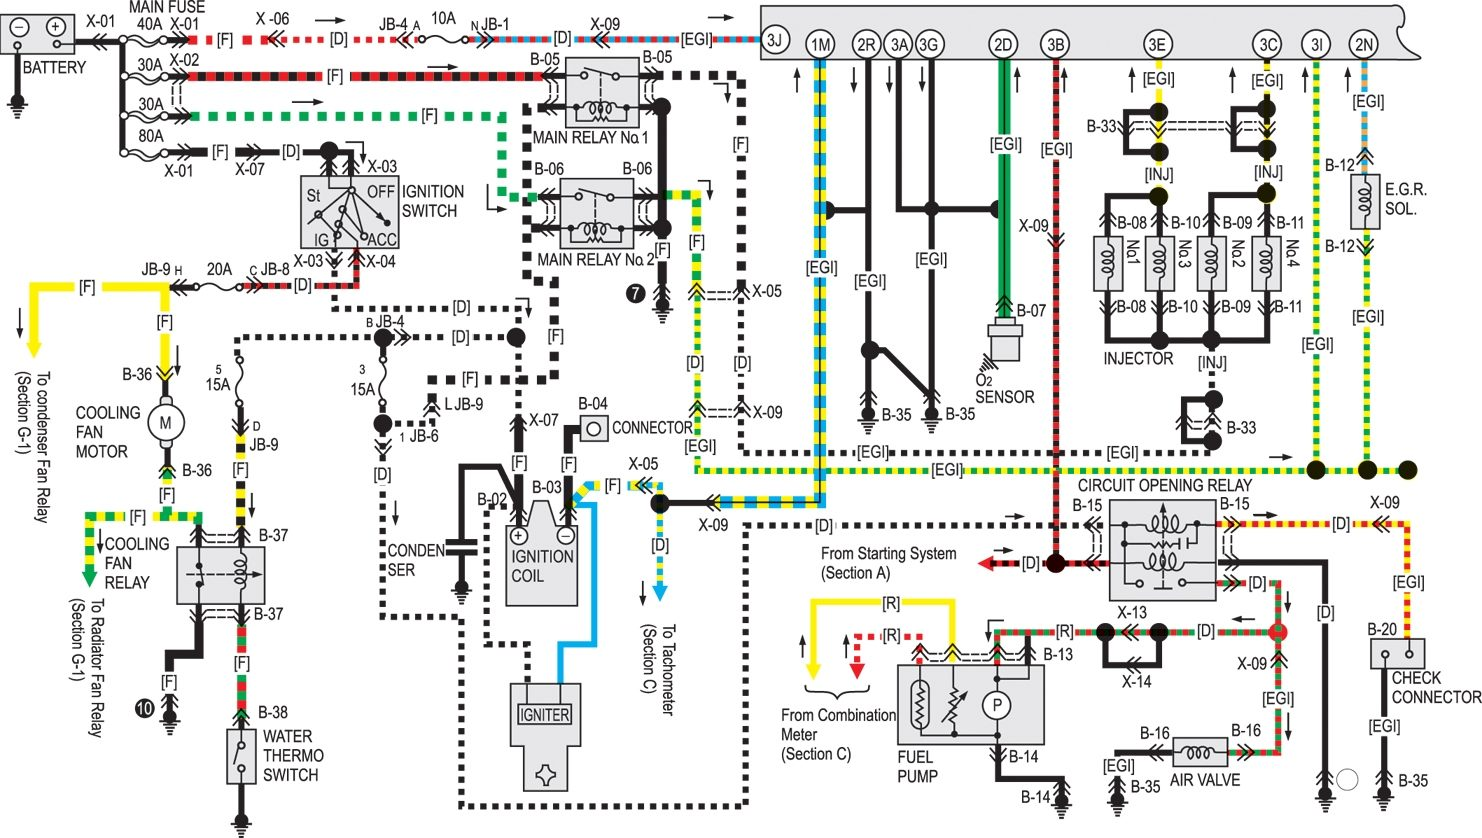 Mazda car manuals wiring diagrams pdf fault codes download asfbconference2016 Image collections